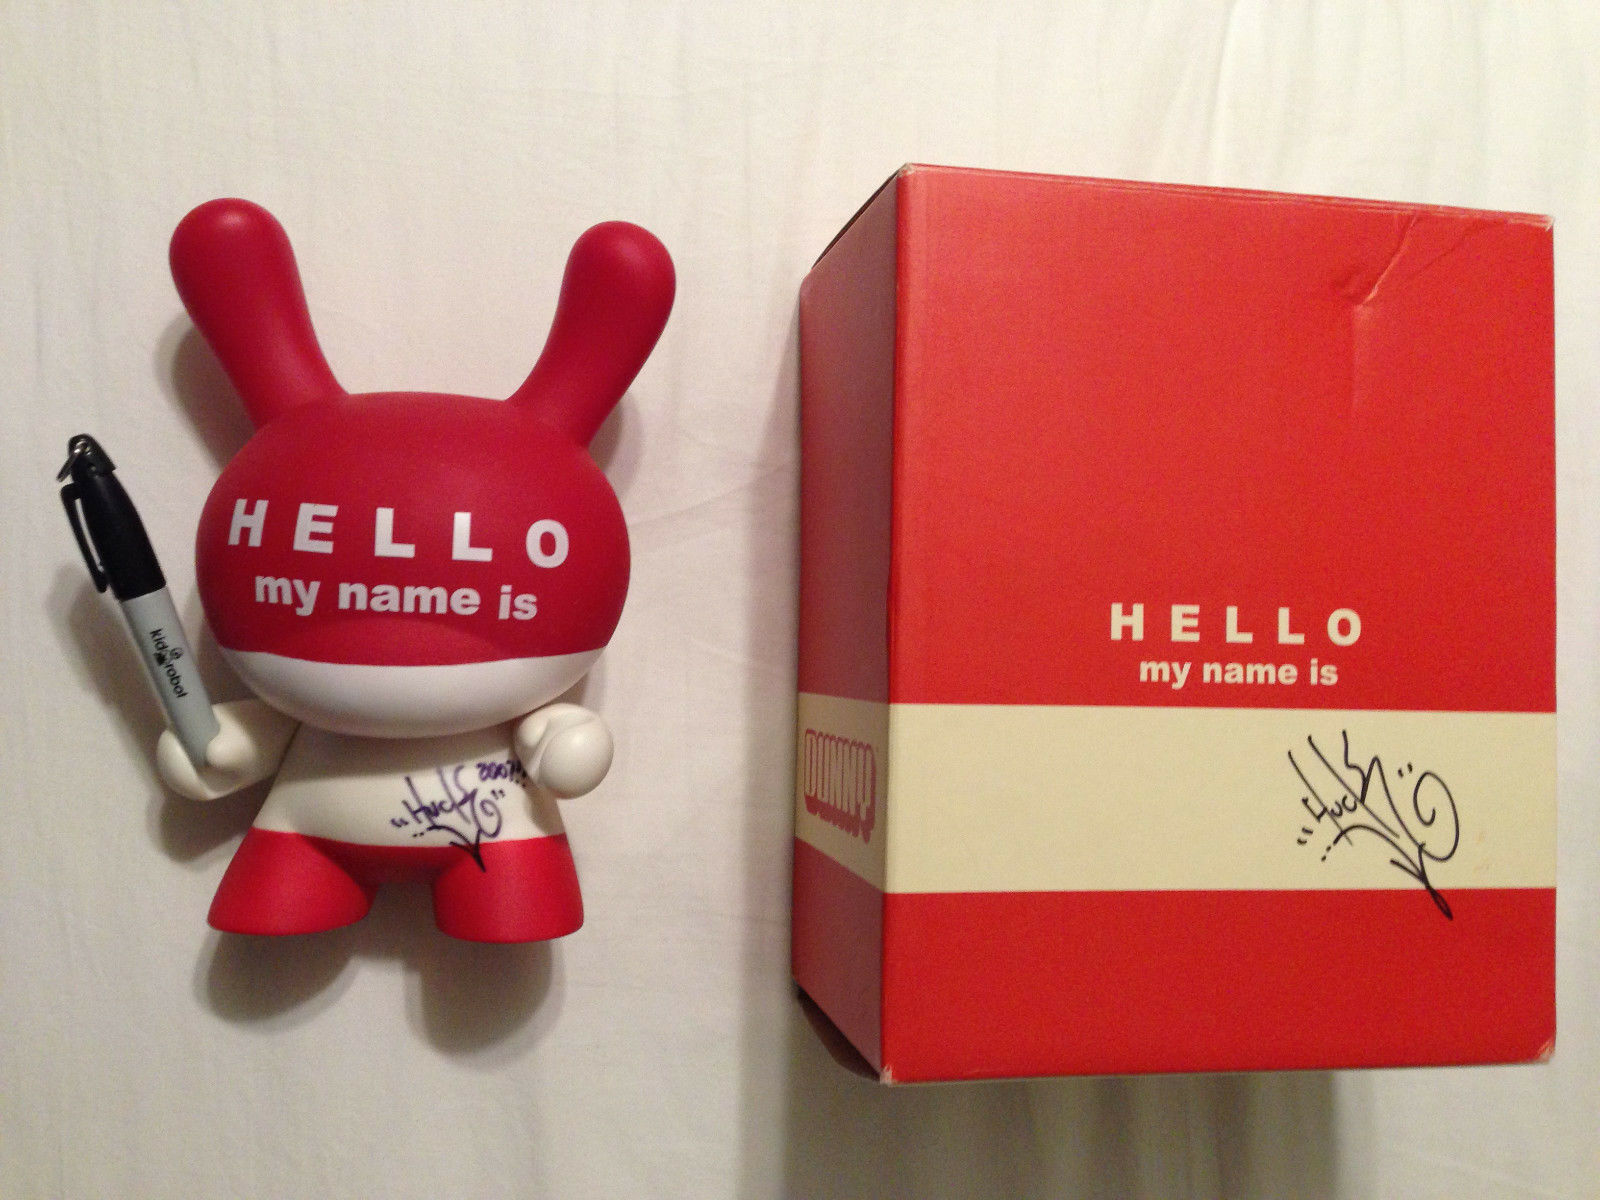 HMNI Hello My Name Is Dunny - 8  by Huck Gee and Kidrobot